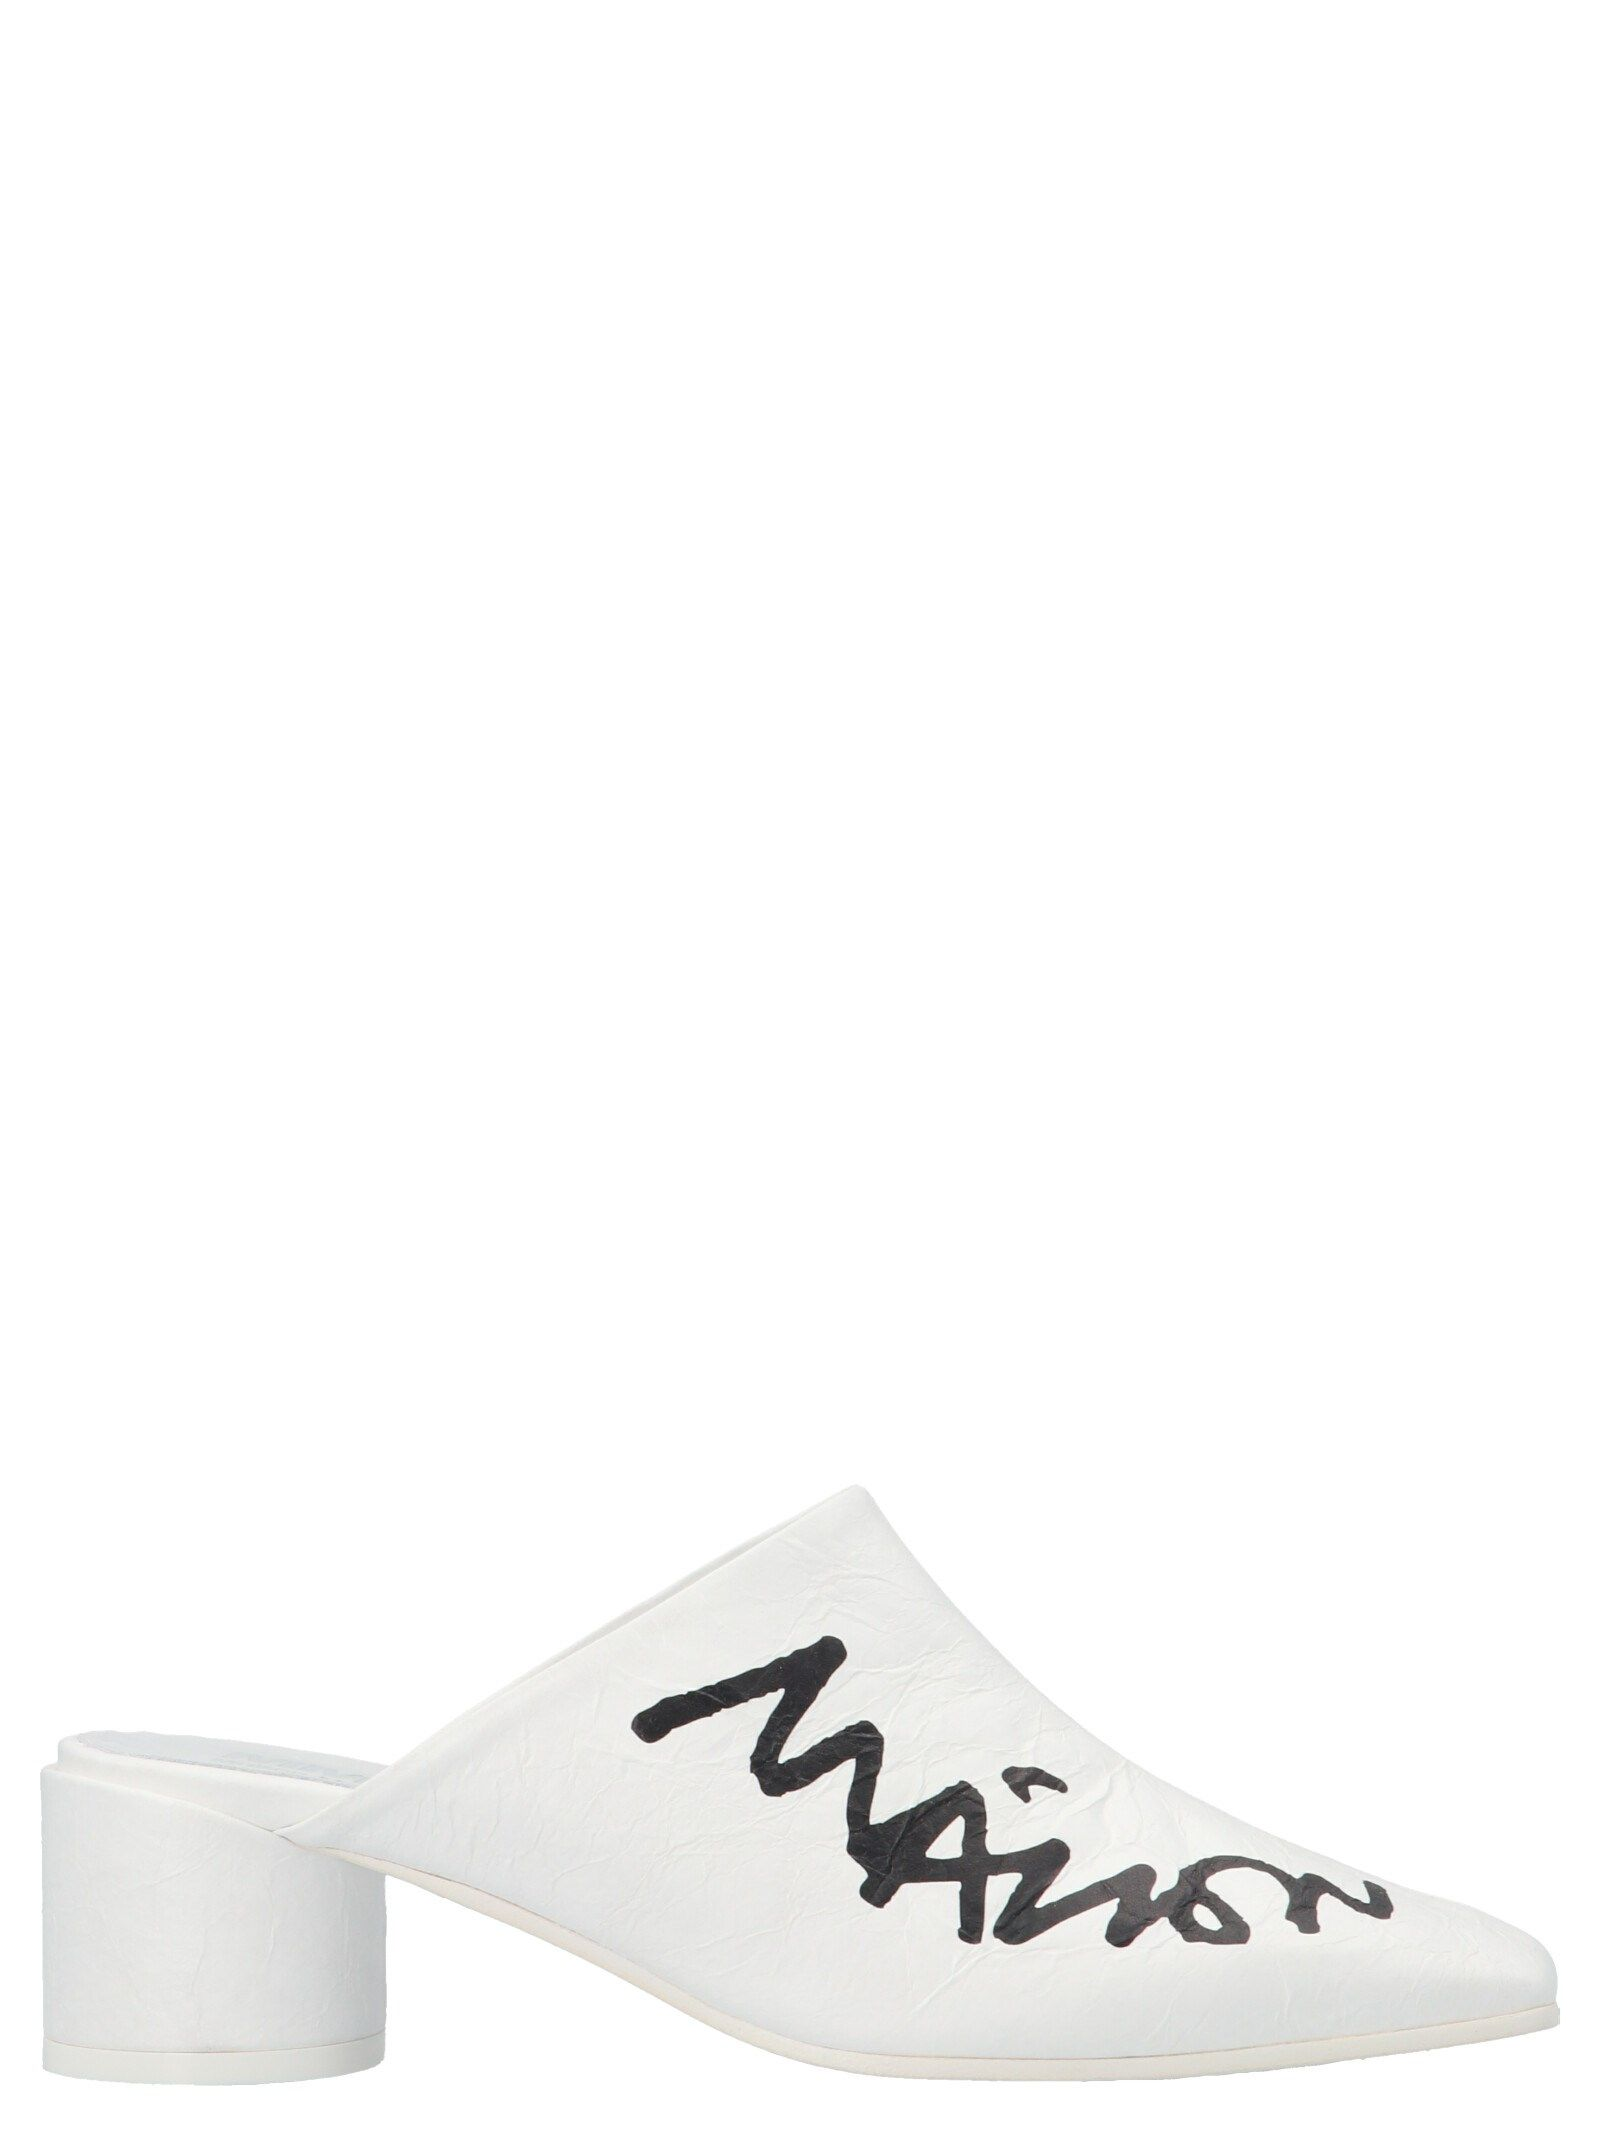 Maison Margiela MAISON MARGIELA WOMEN'S WHITE LEATHER SANDALS